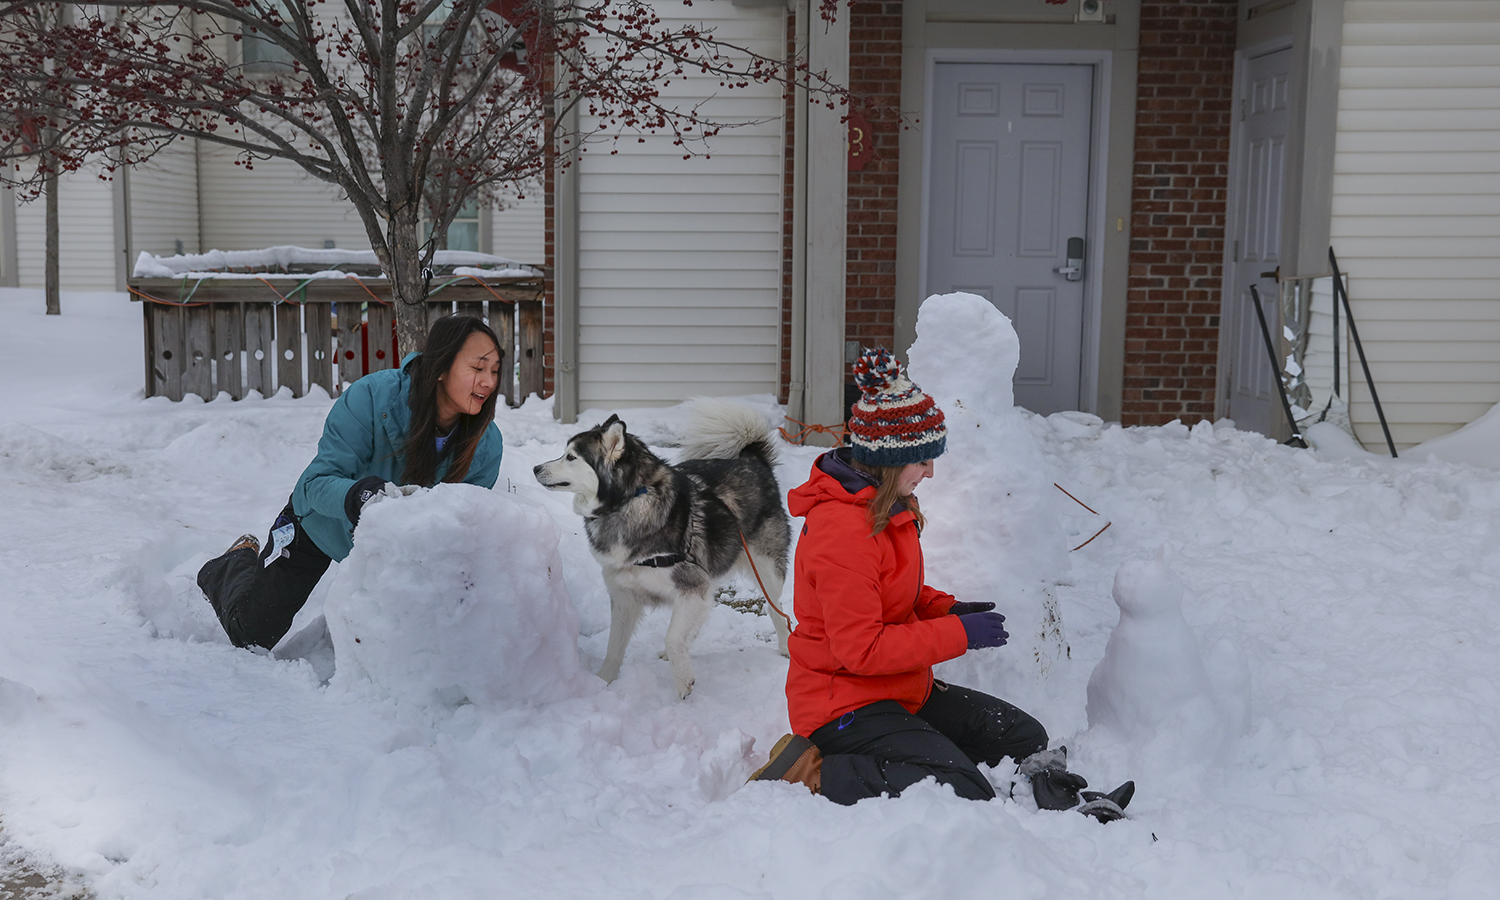 Denali Minnick '19 and Therese Kowalczyk '19 build snow people with husky Ace.